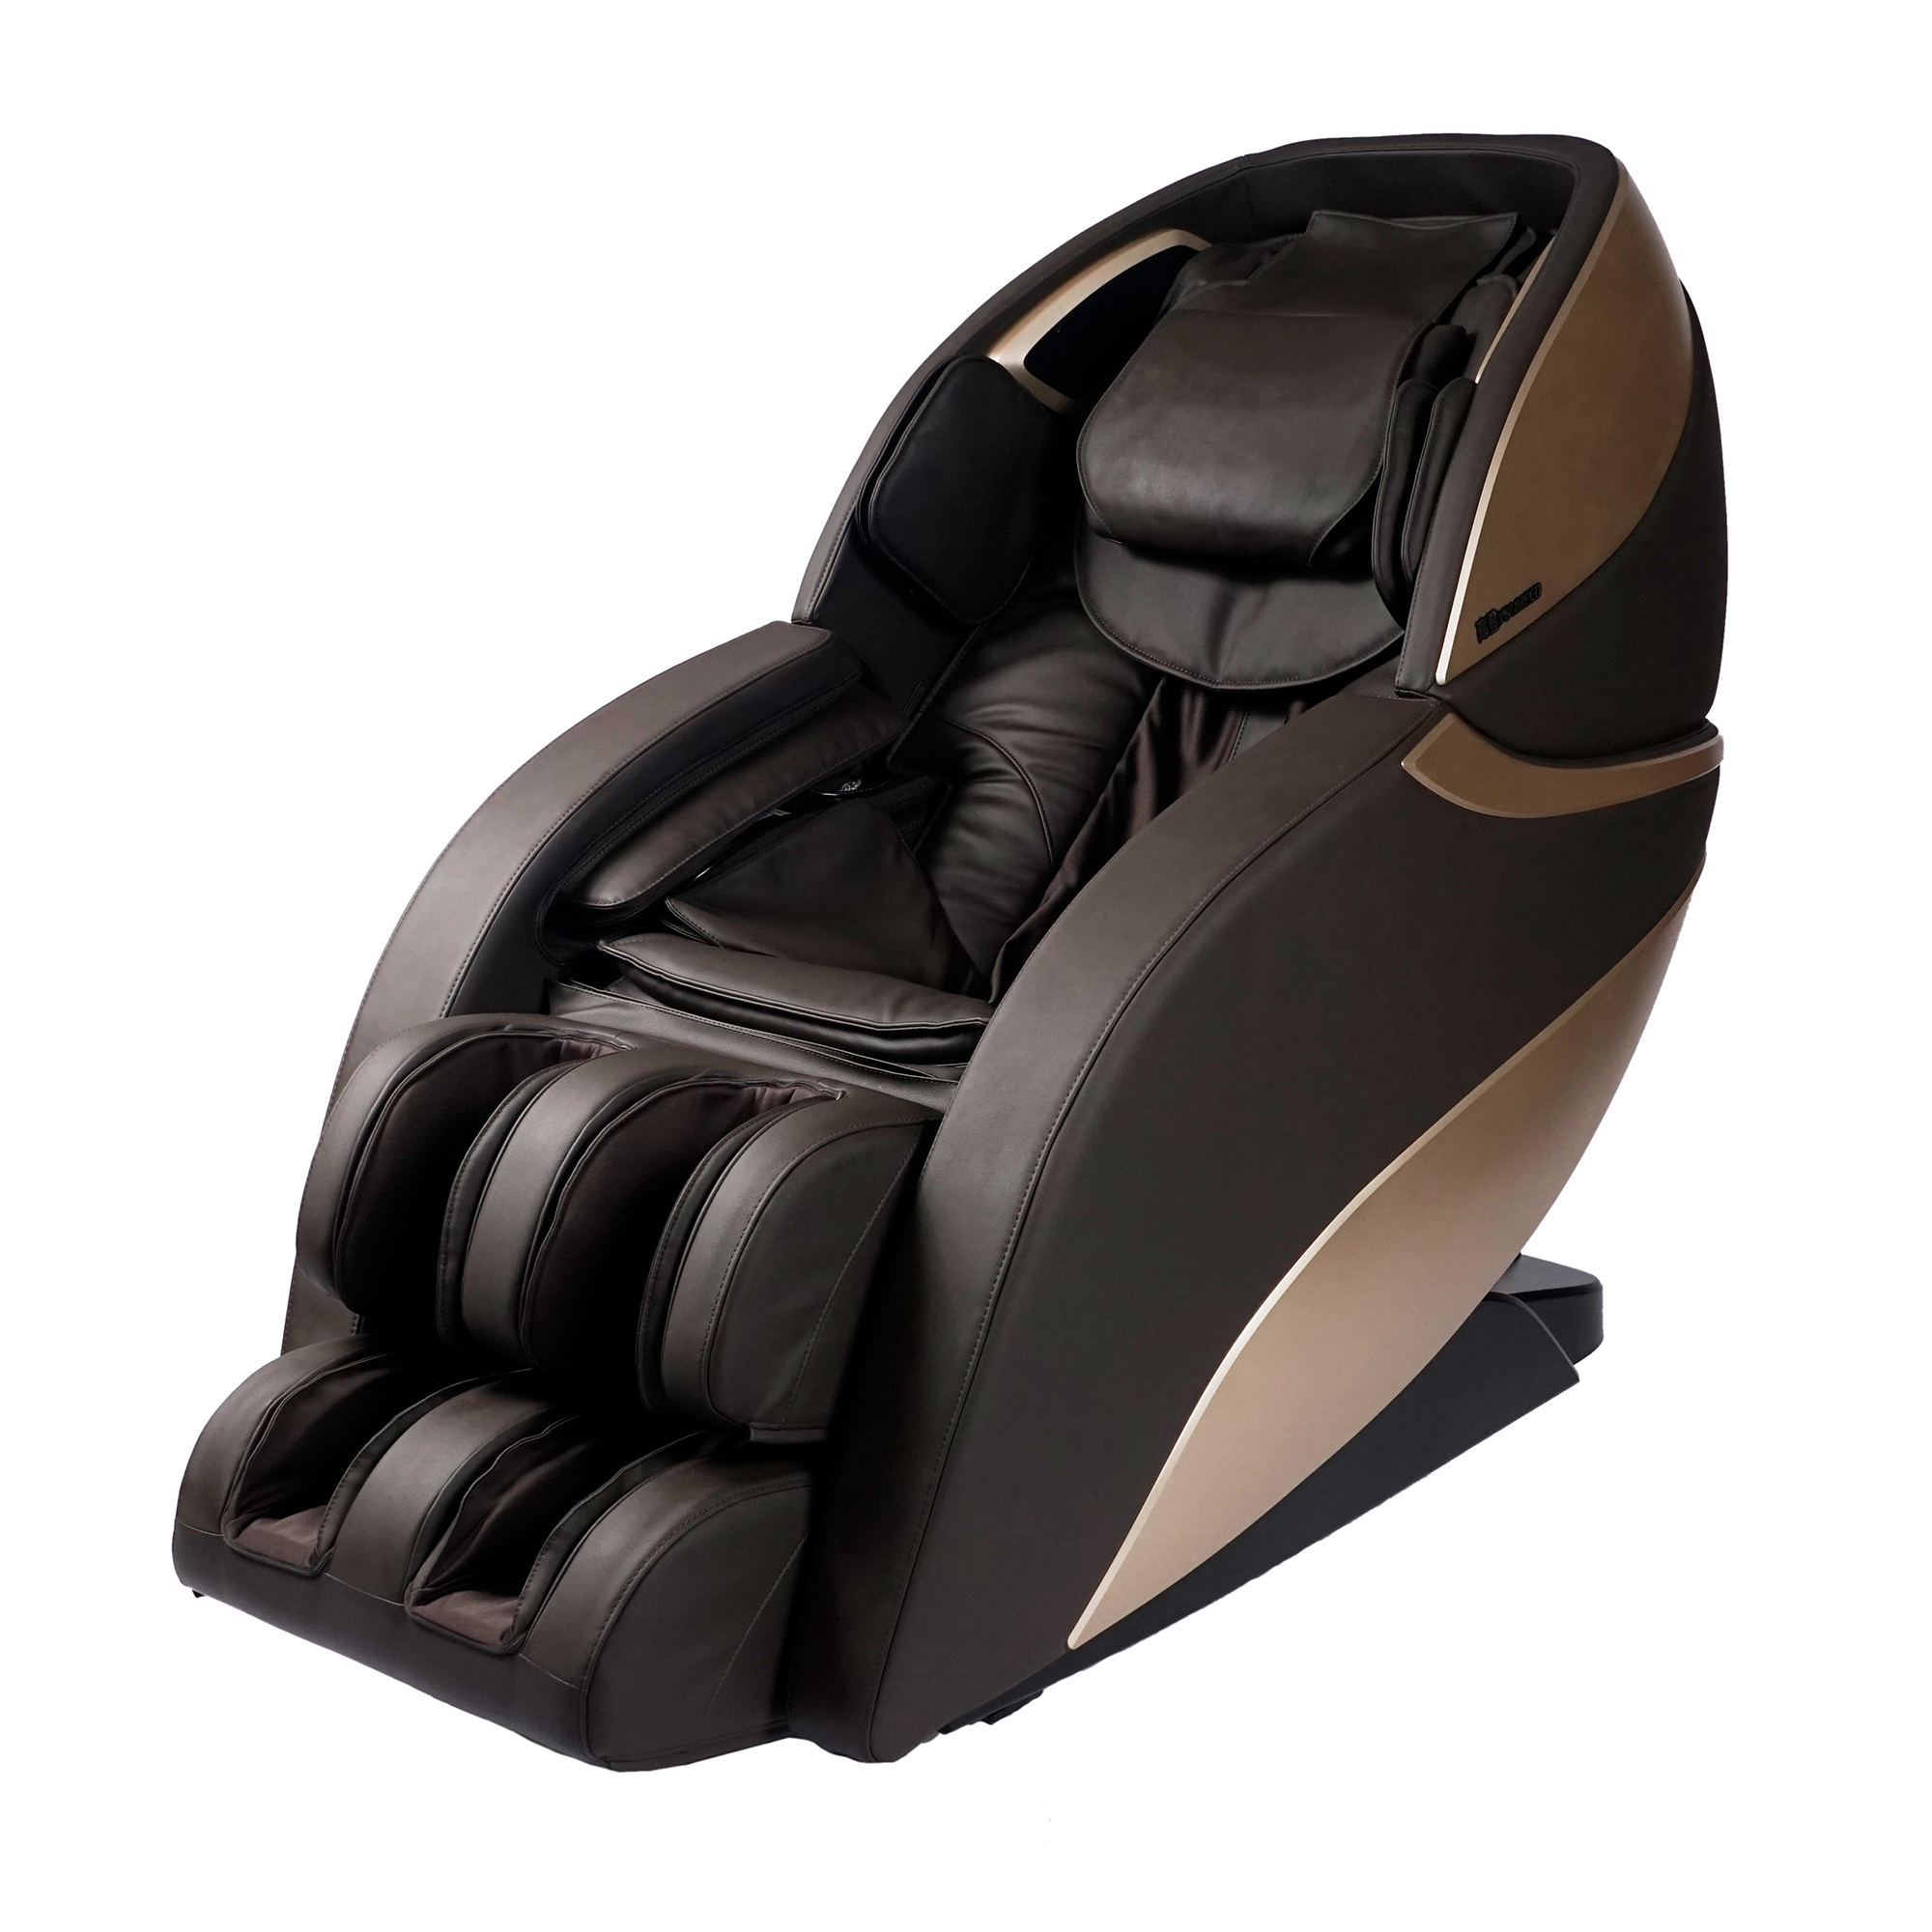 Massage chair review tips on finding the best massage chair for Popular massage chair